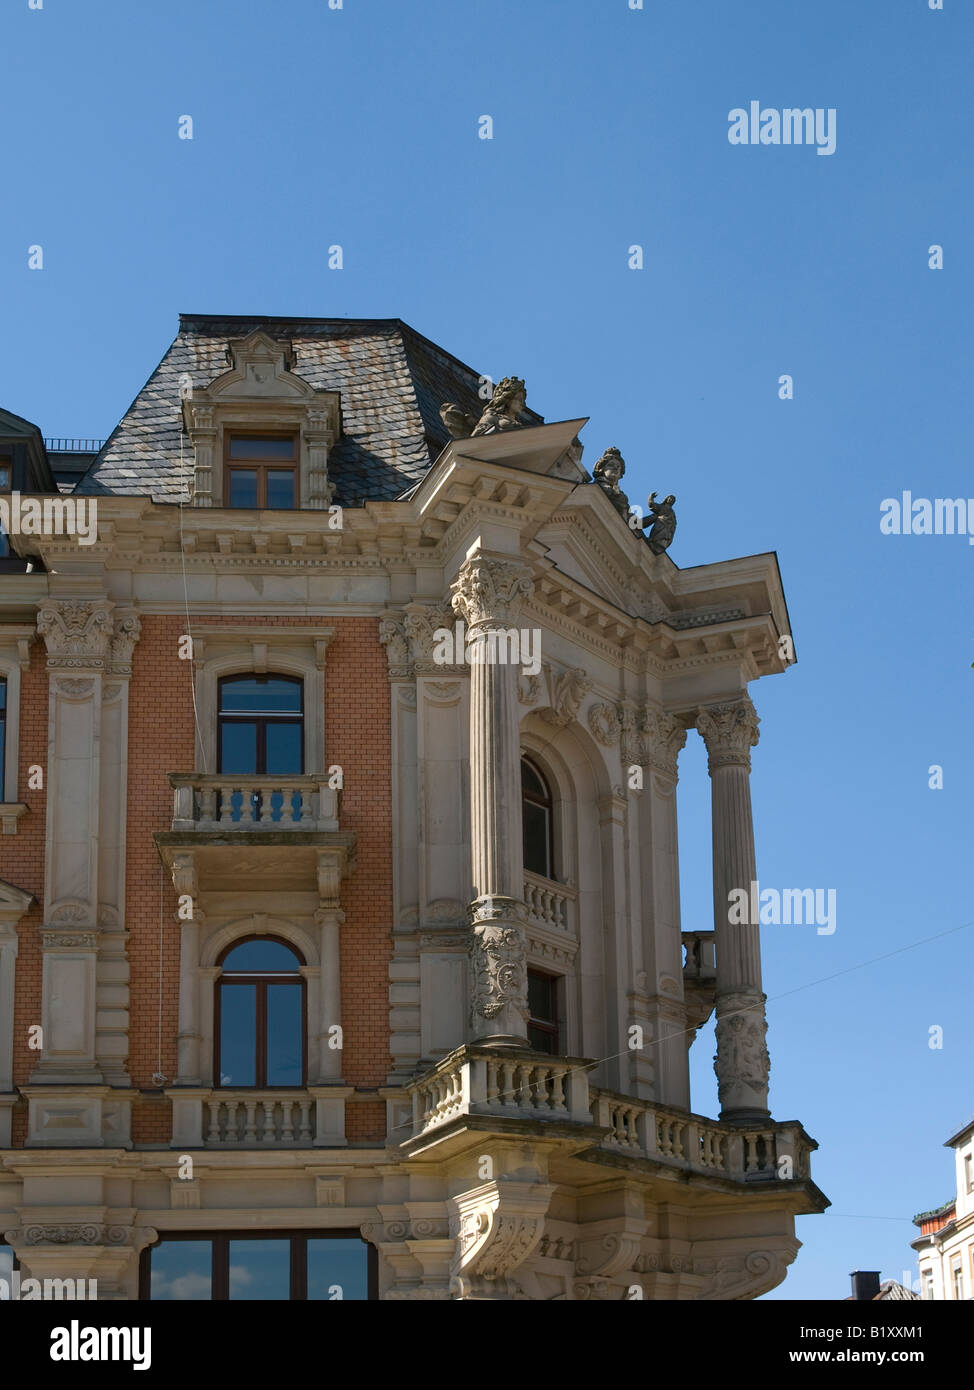 building house in the city in victorian architectural style in Bad Kissingen Bavaria Germany - Stock Image